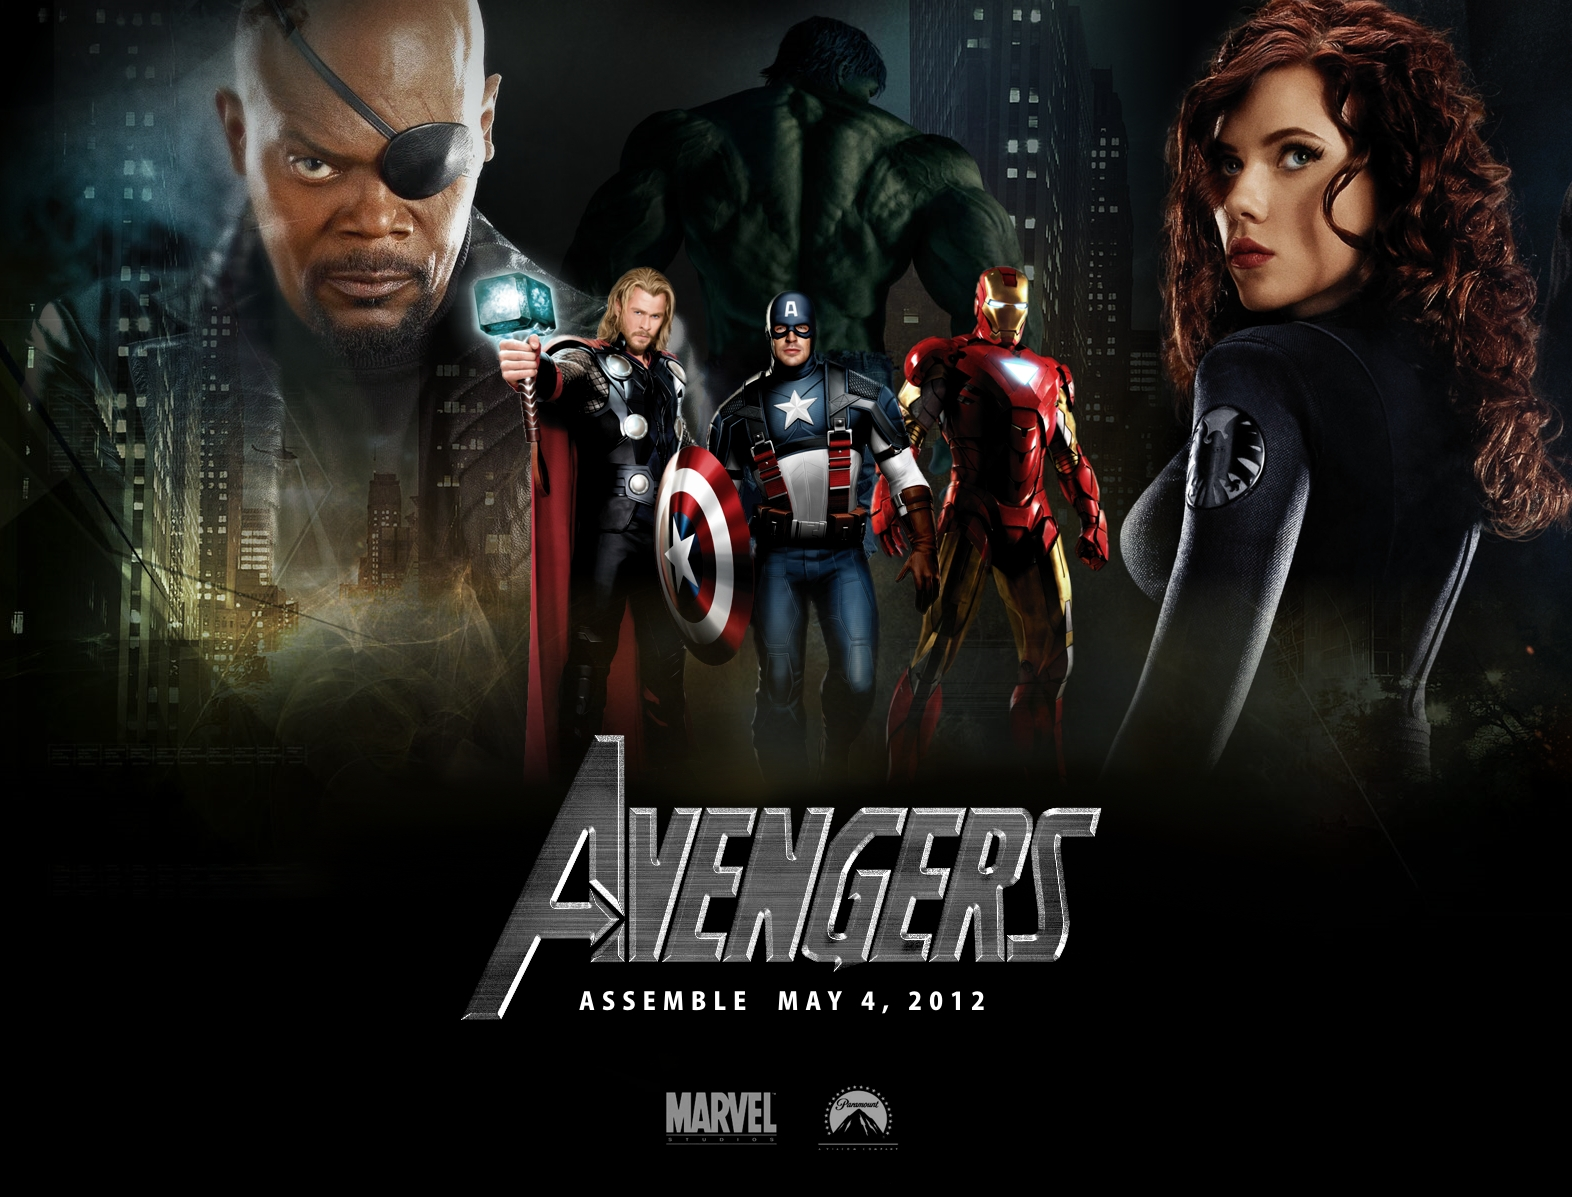 New Online Peek: 'The Avengers'